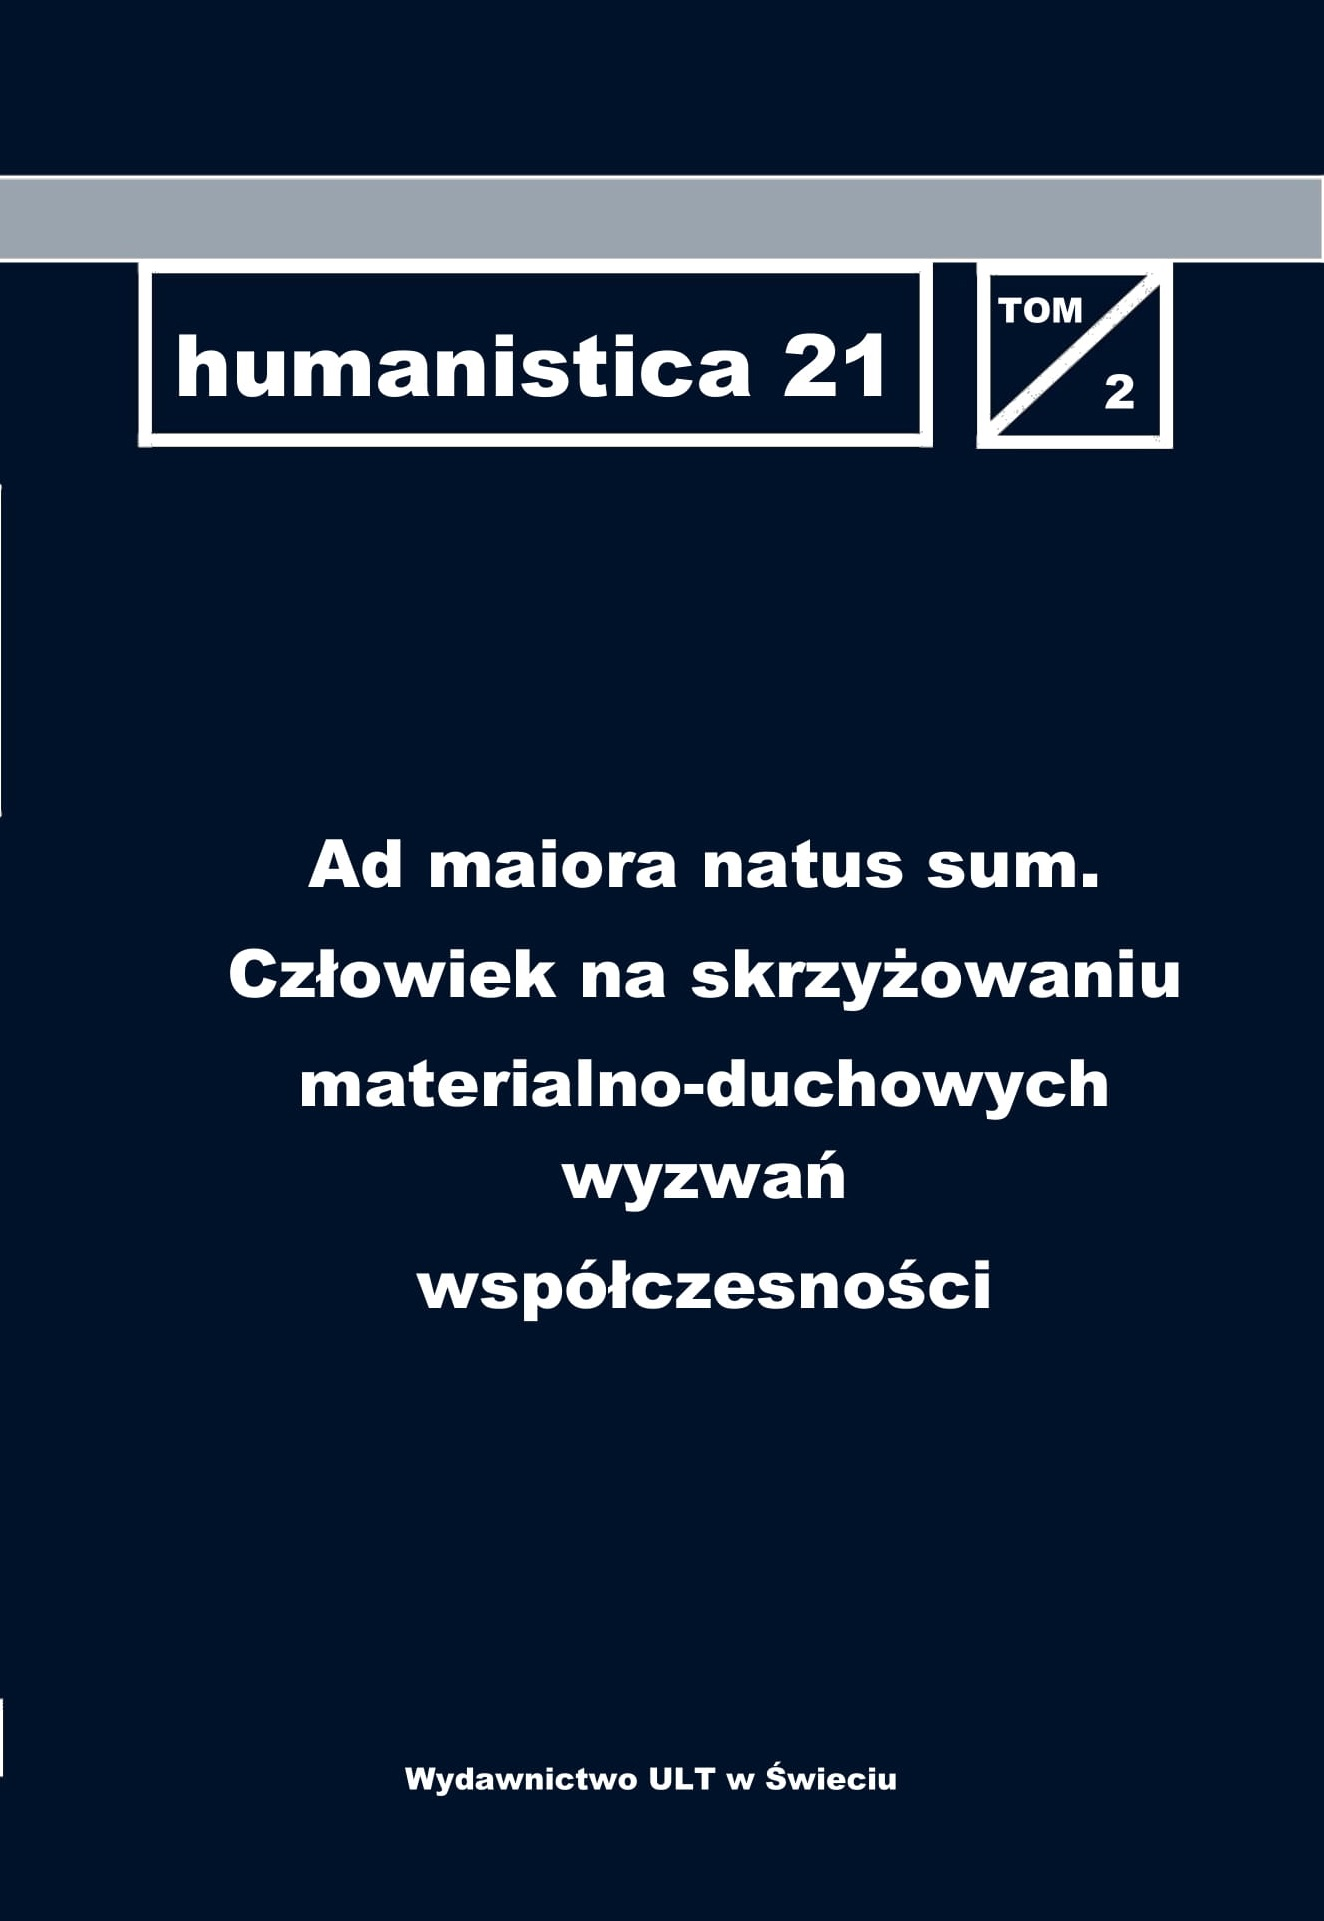 humanistica 21 Cover Image